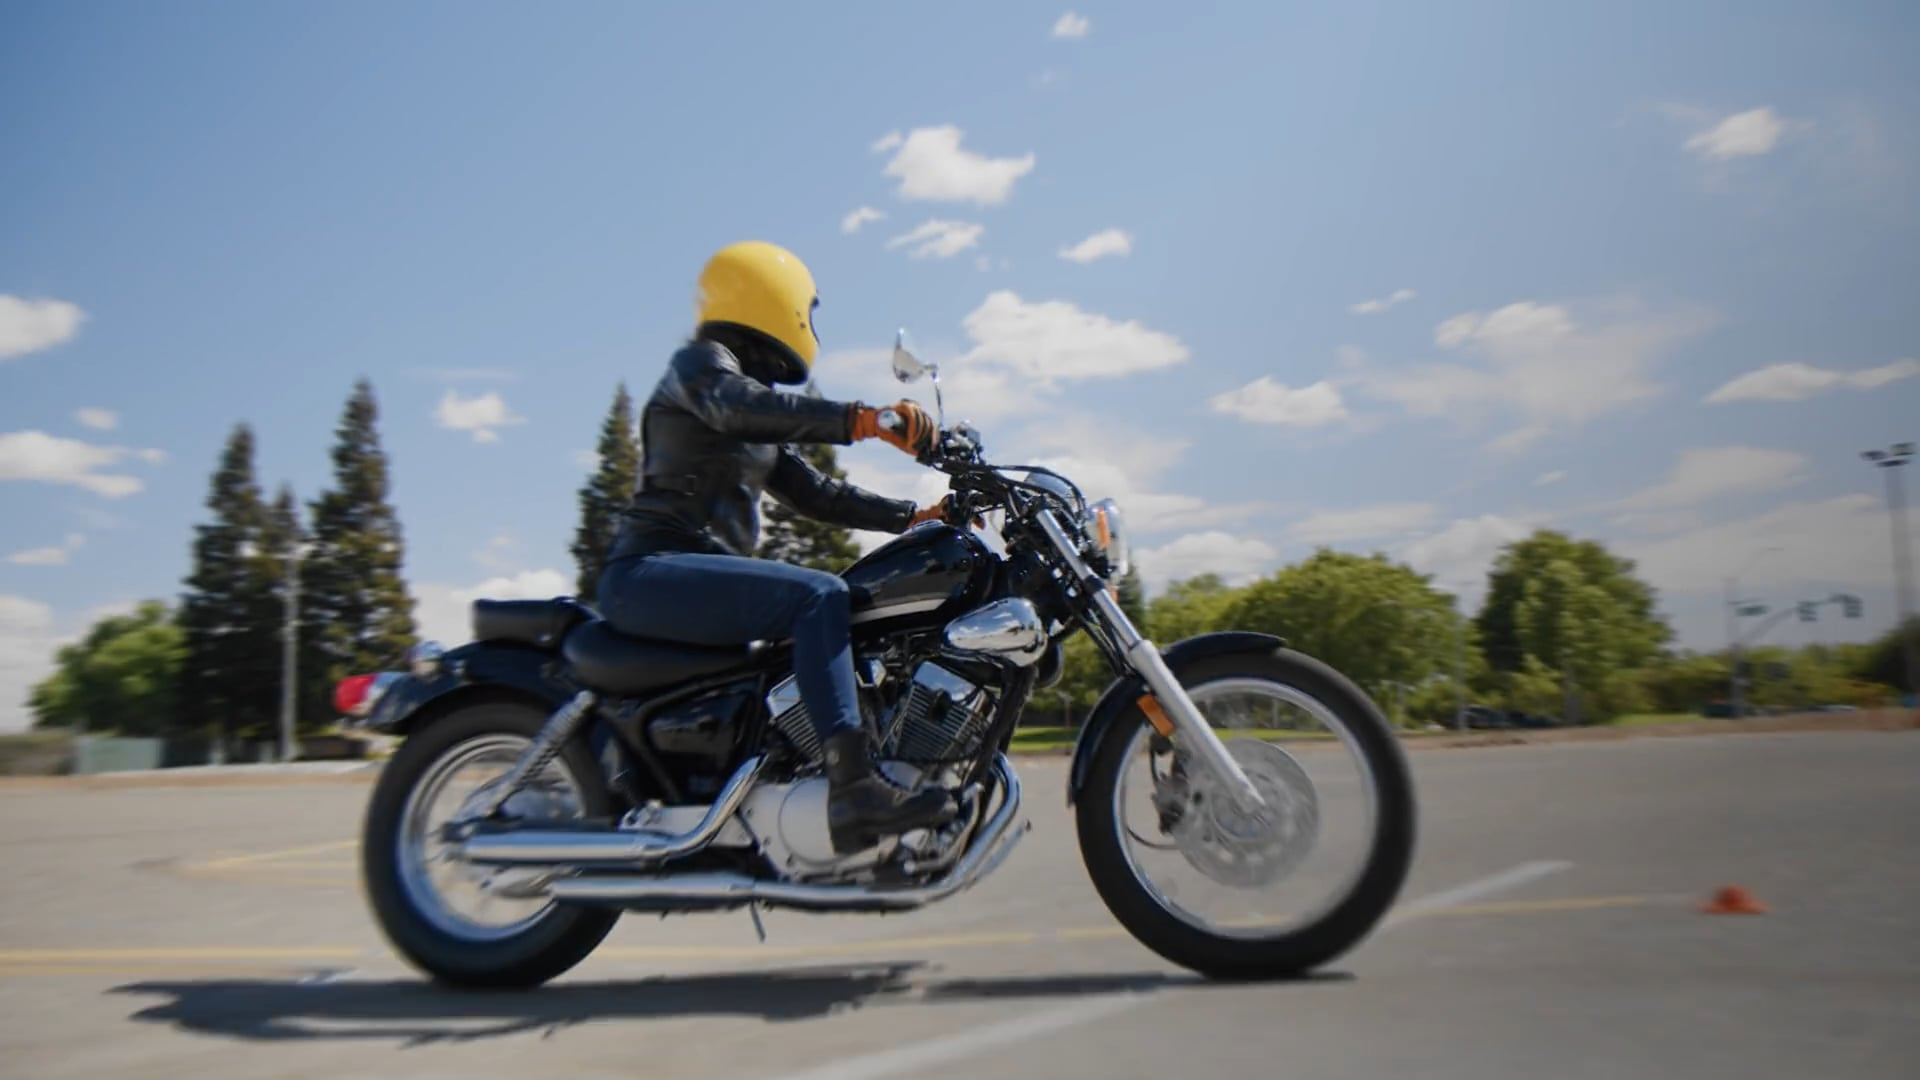 CALIFORNIA MOTORCYCLE SAFETY PROGRAM   CHP - (COMMERCIAL)